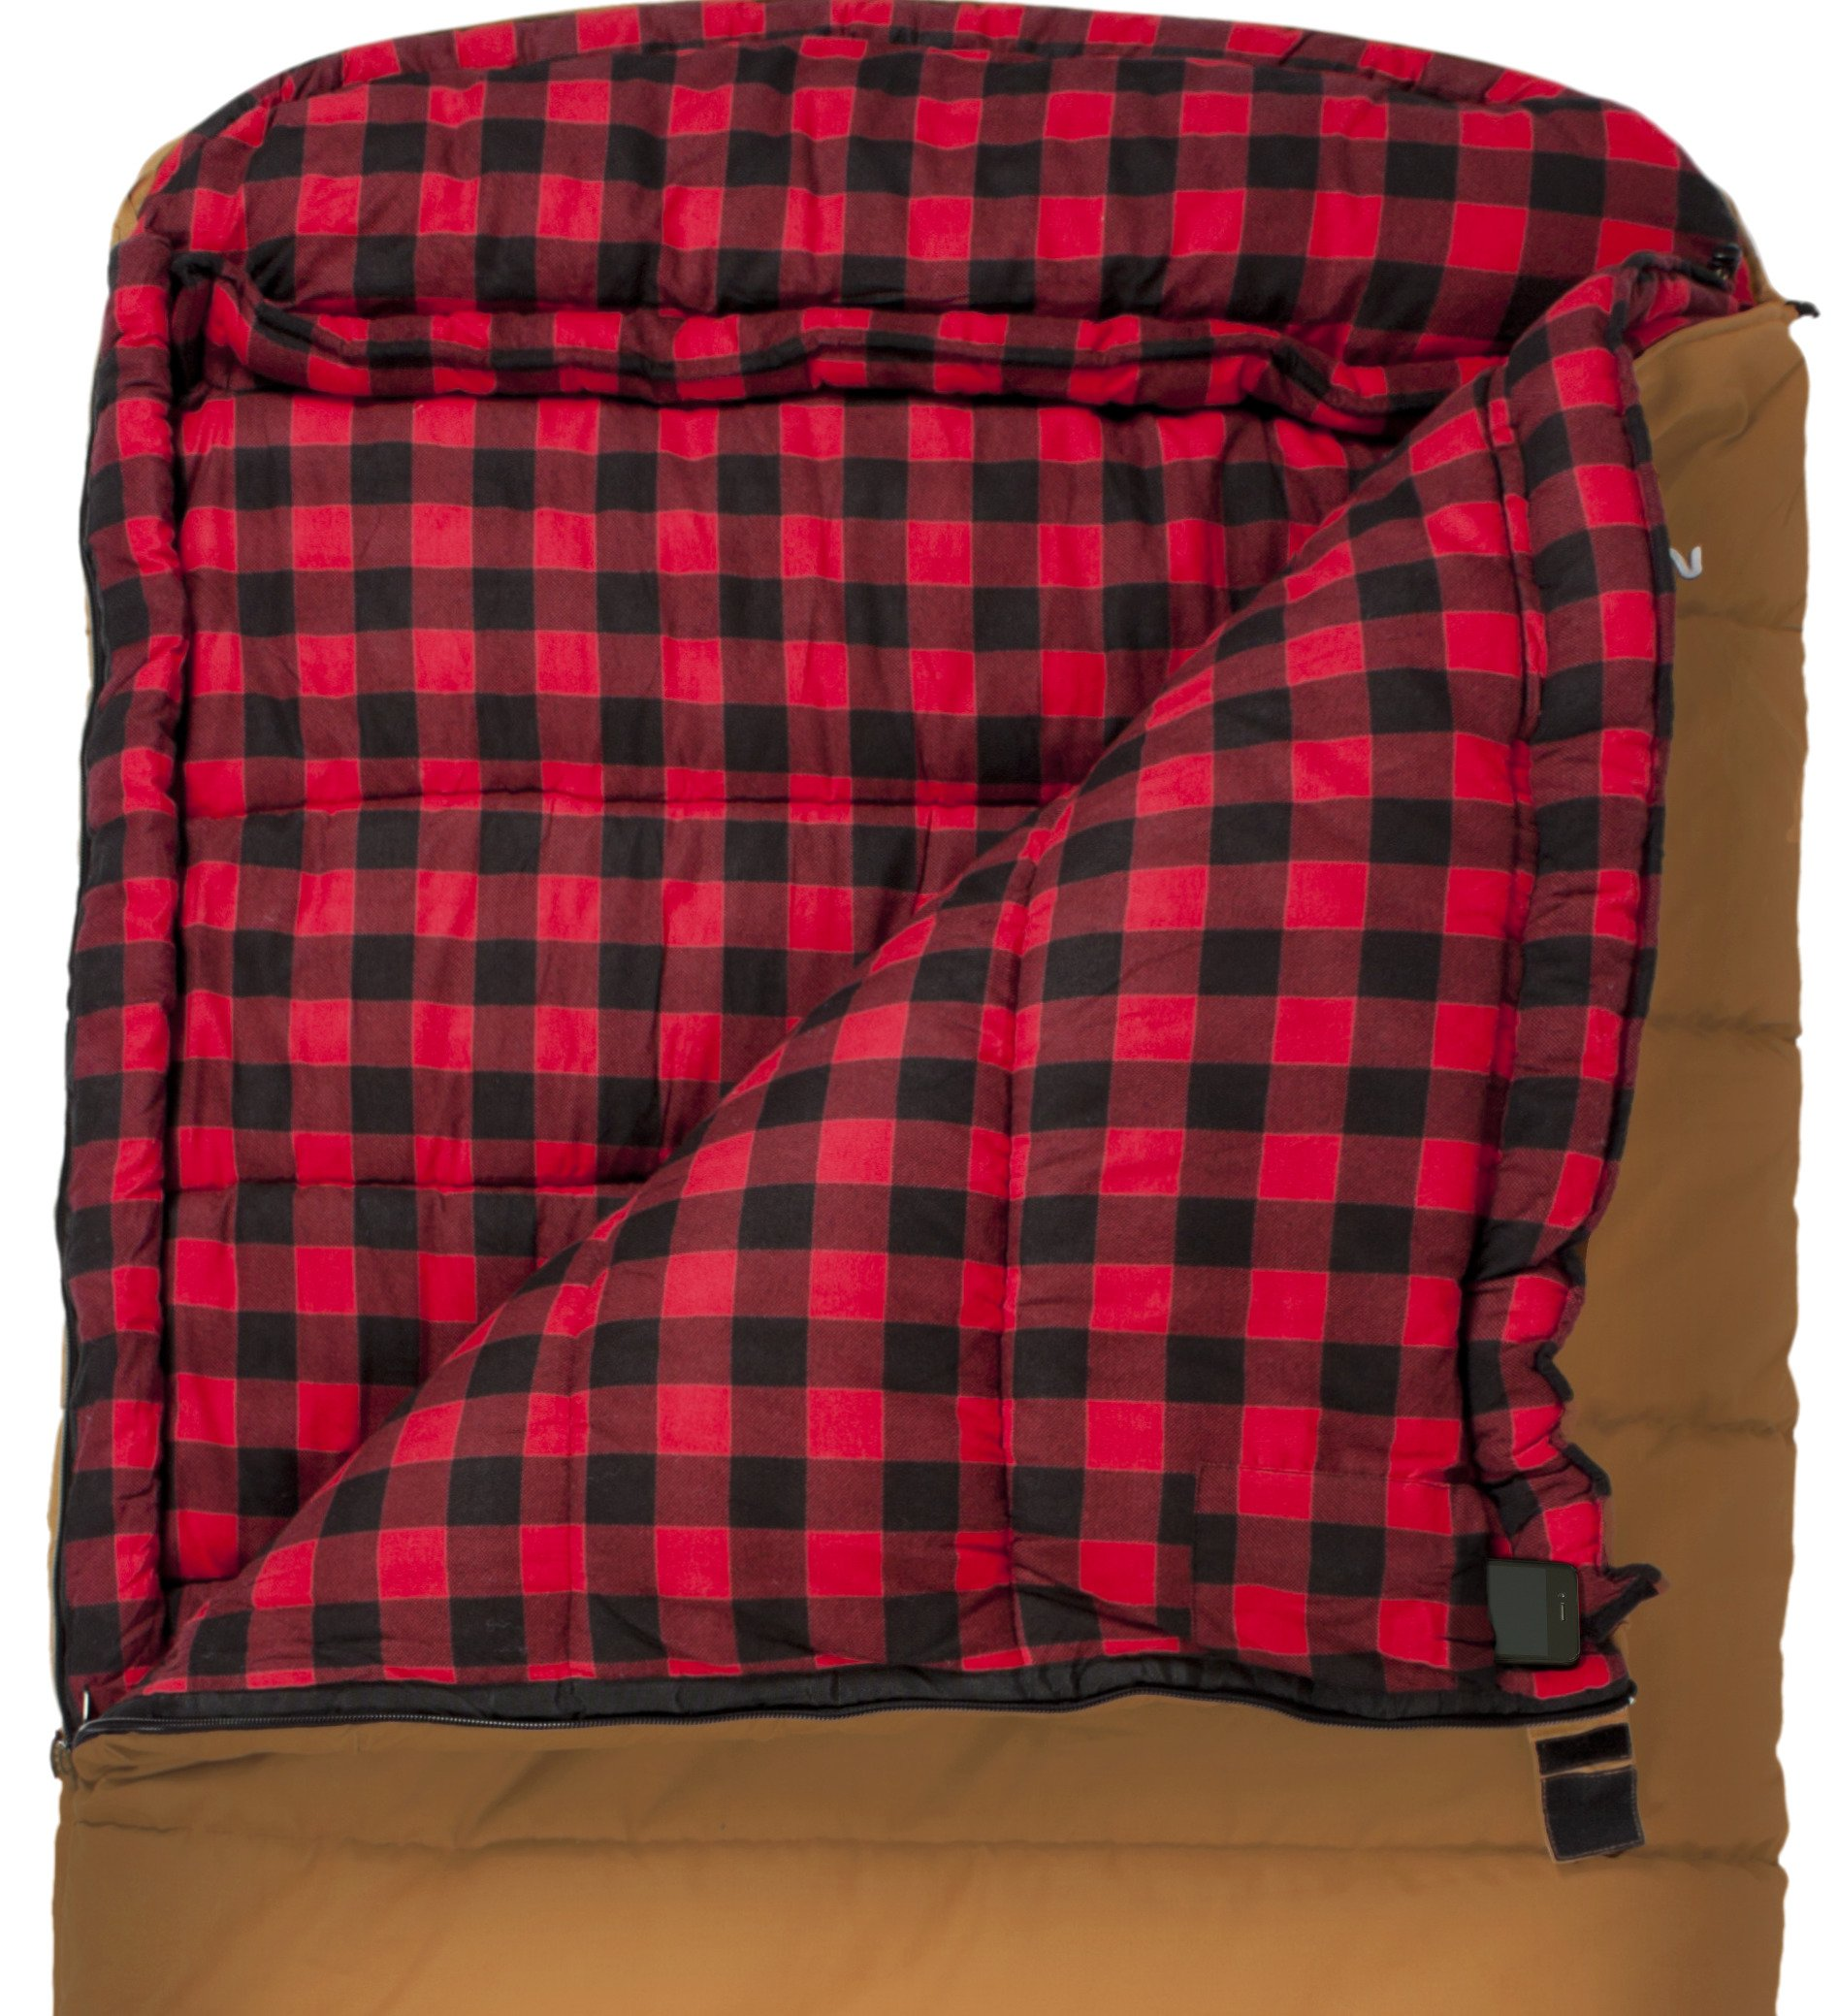 TETON Sports Deer Hunter Sleeping Bag; Warm and Comfortable Sleeping Bag Great for Camping Even in Cold Seasons 4